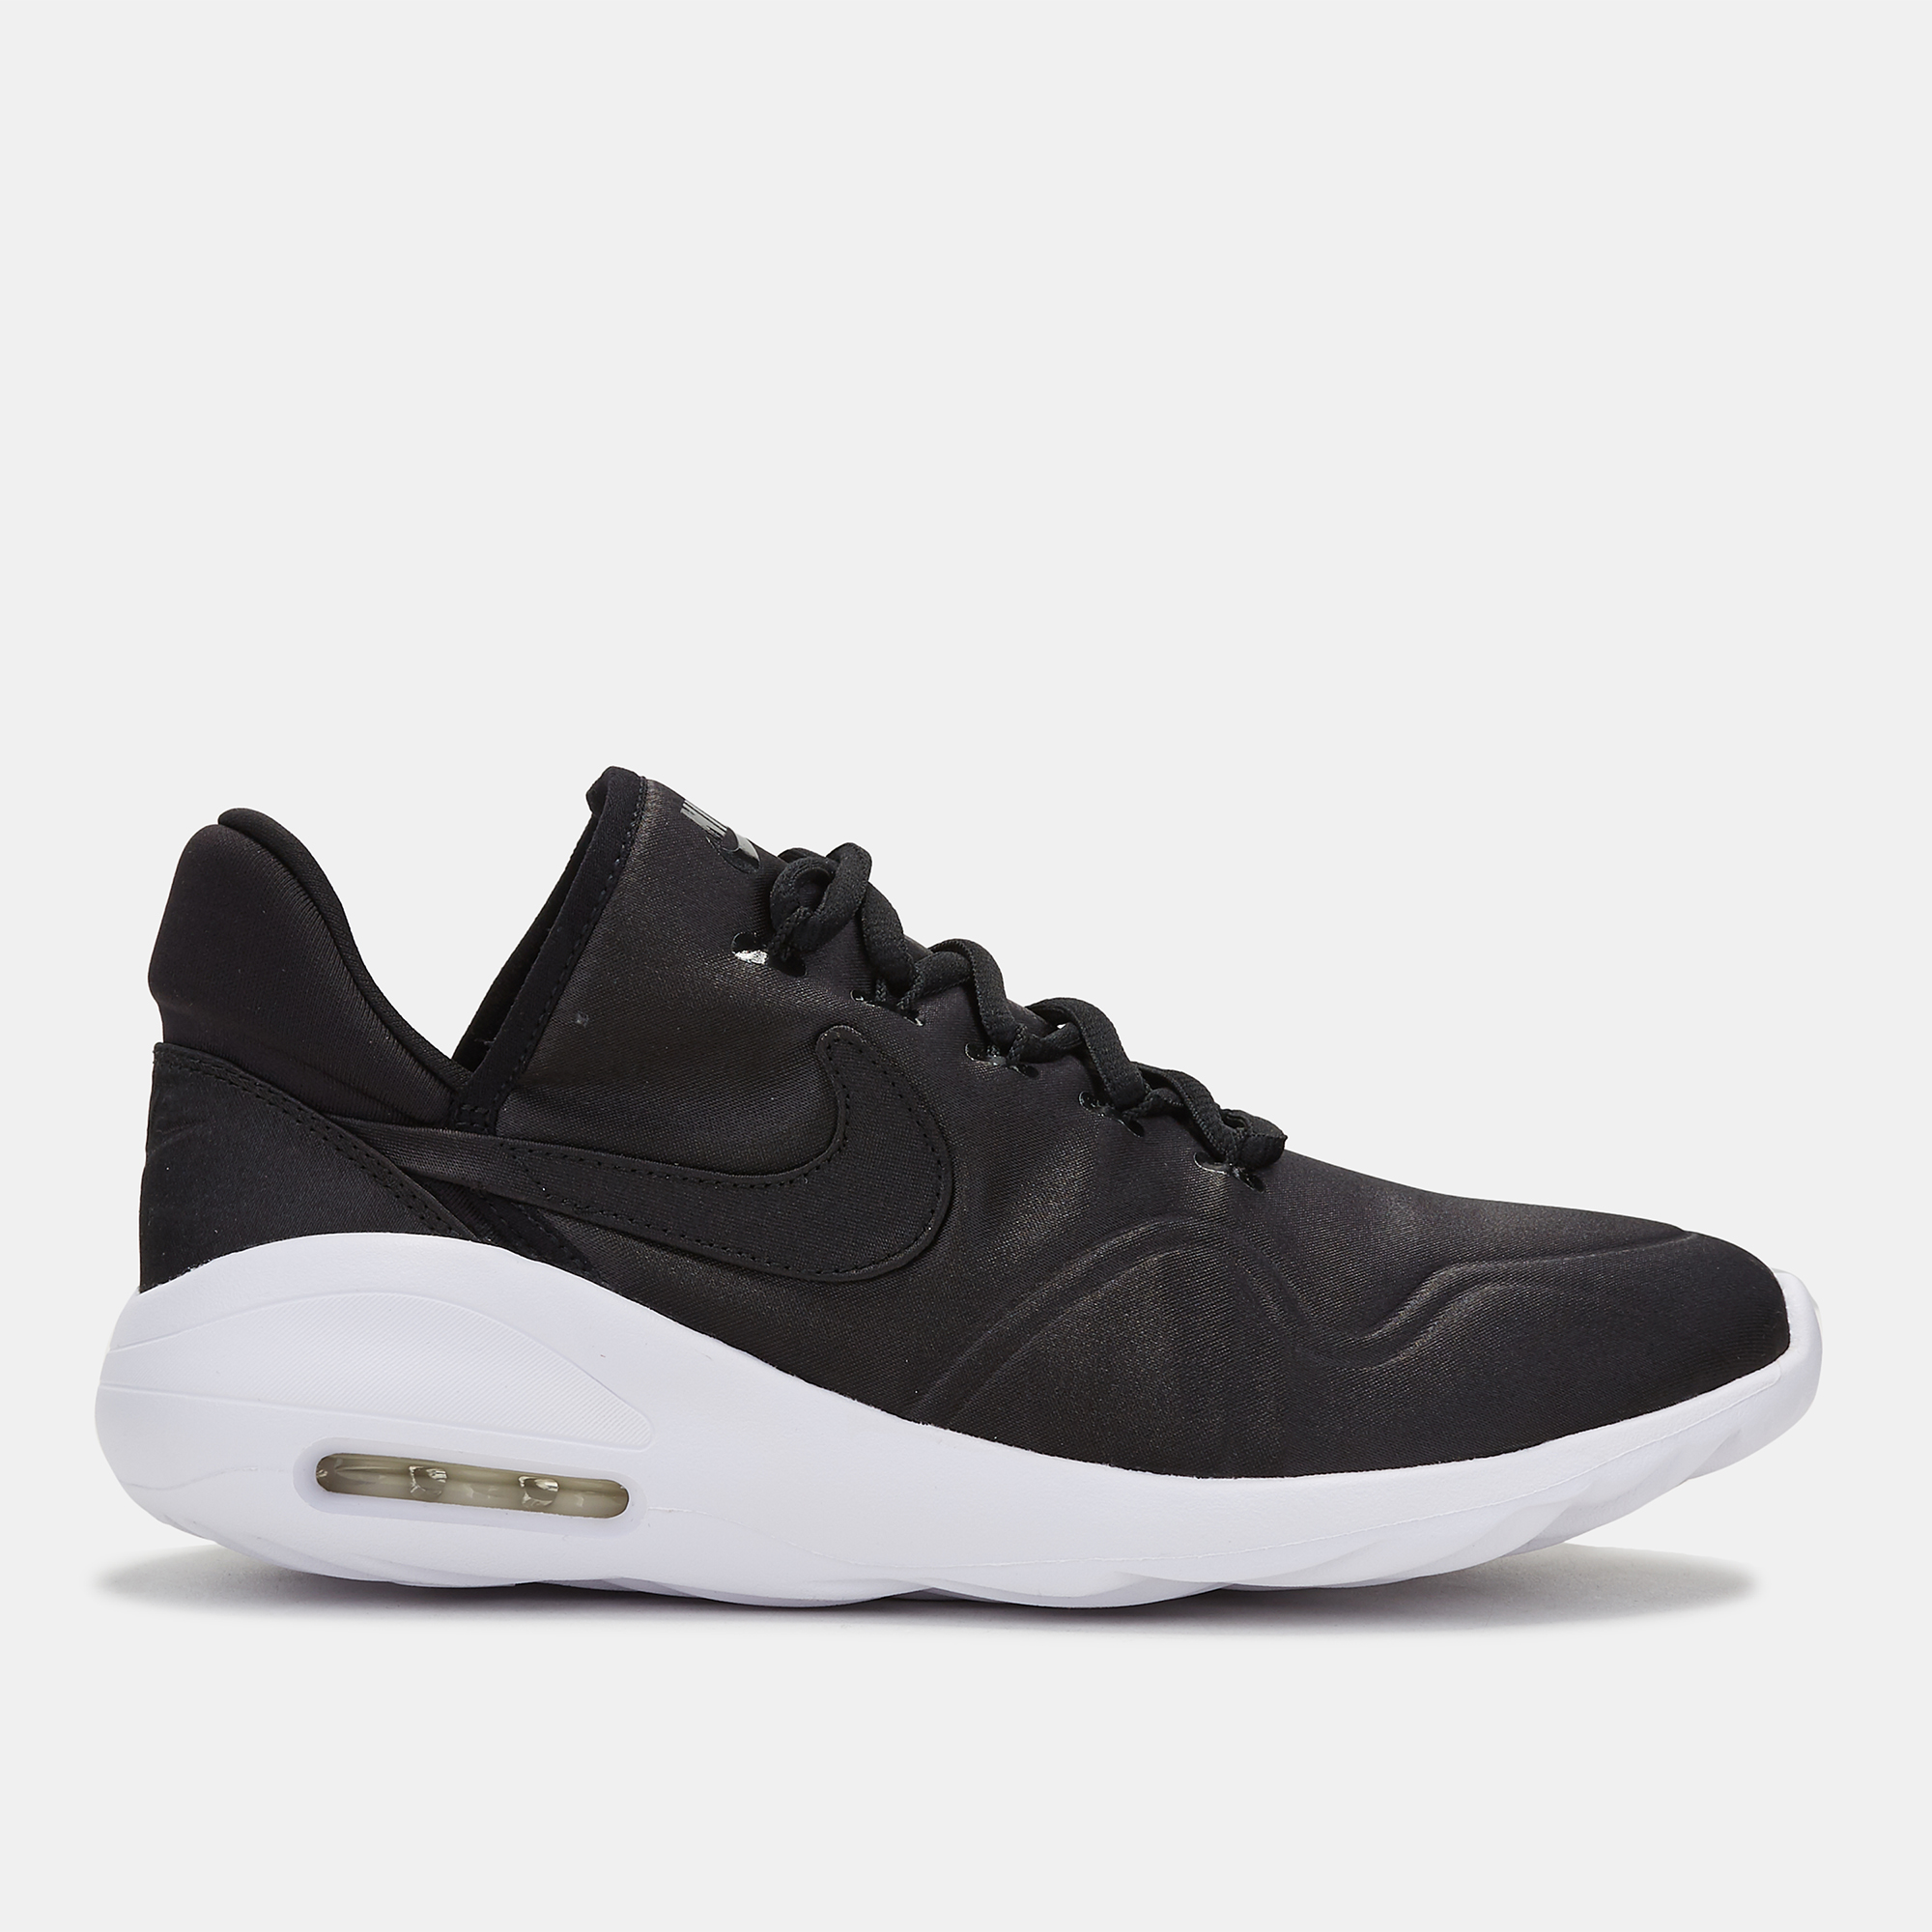 Nike Womens Air Max Sasha Low Top Lace Up Running Sneaker